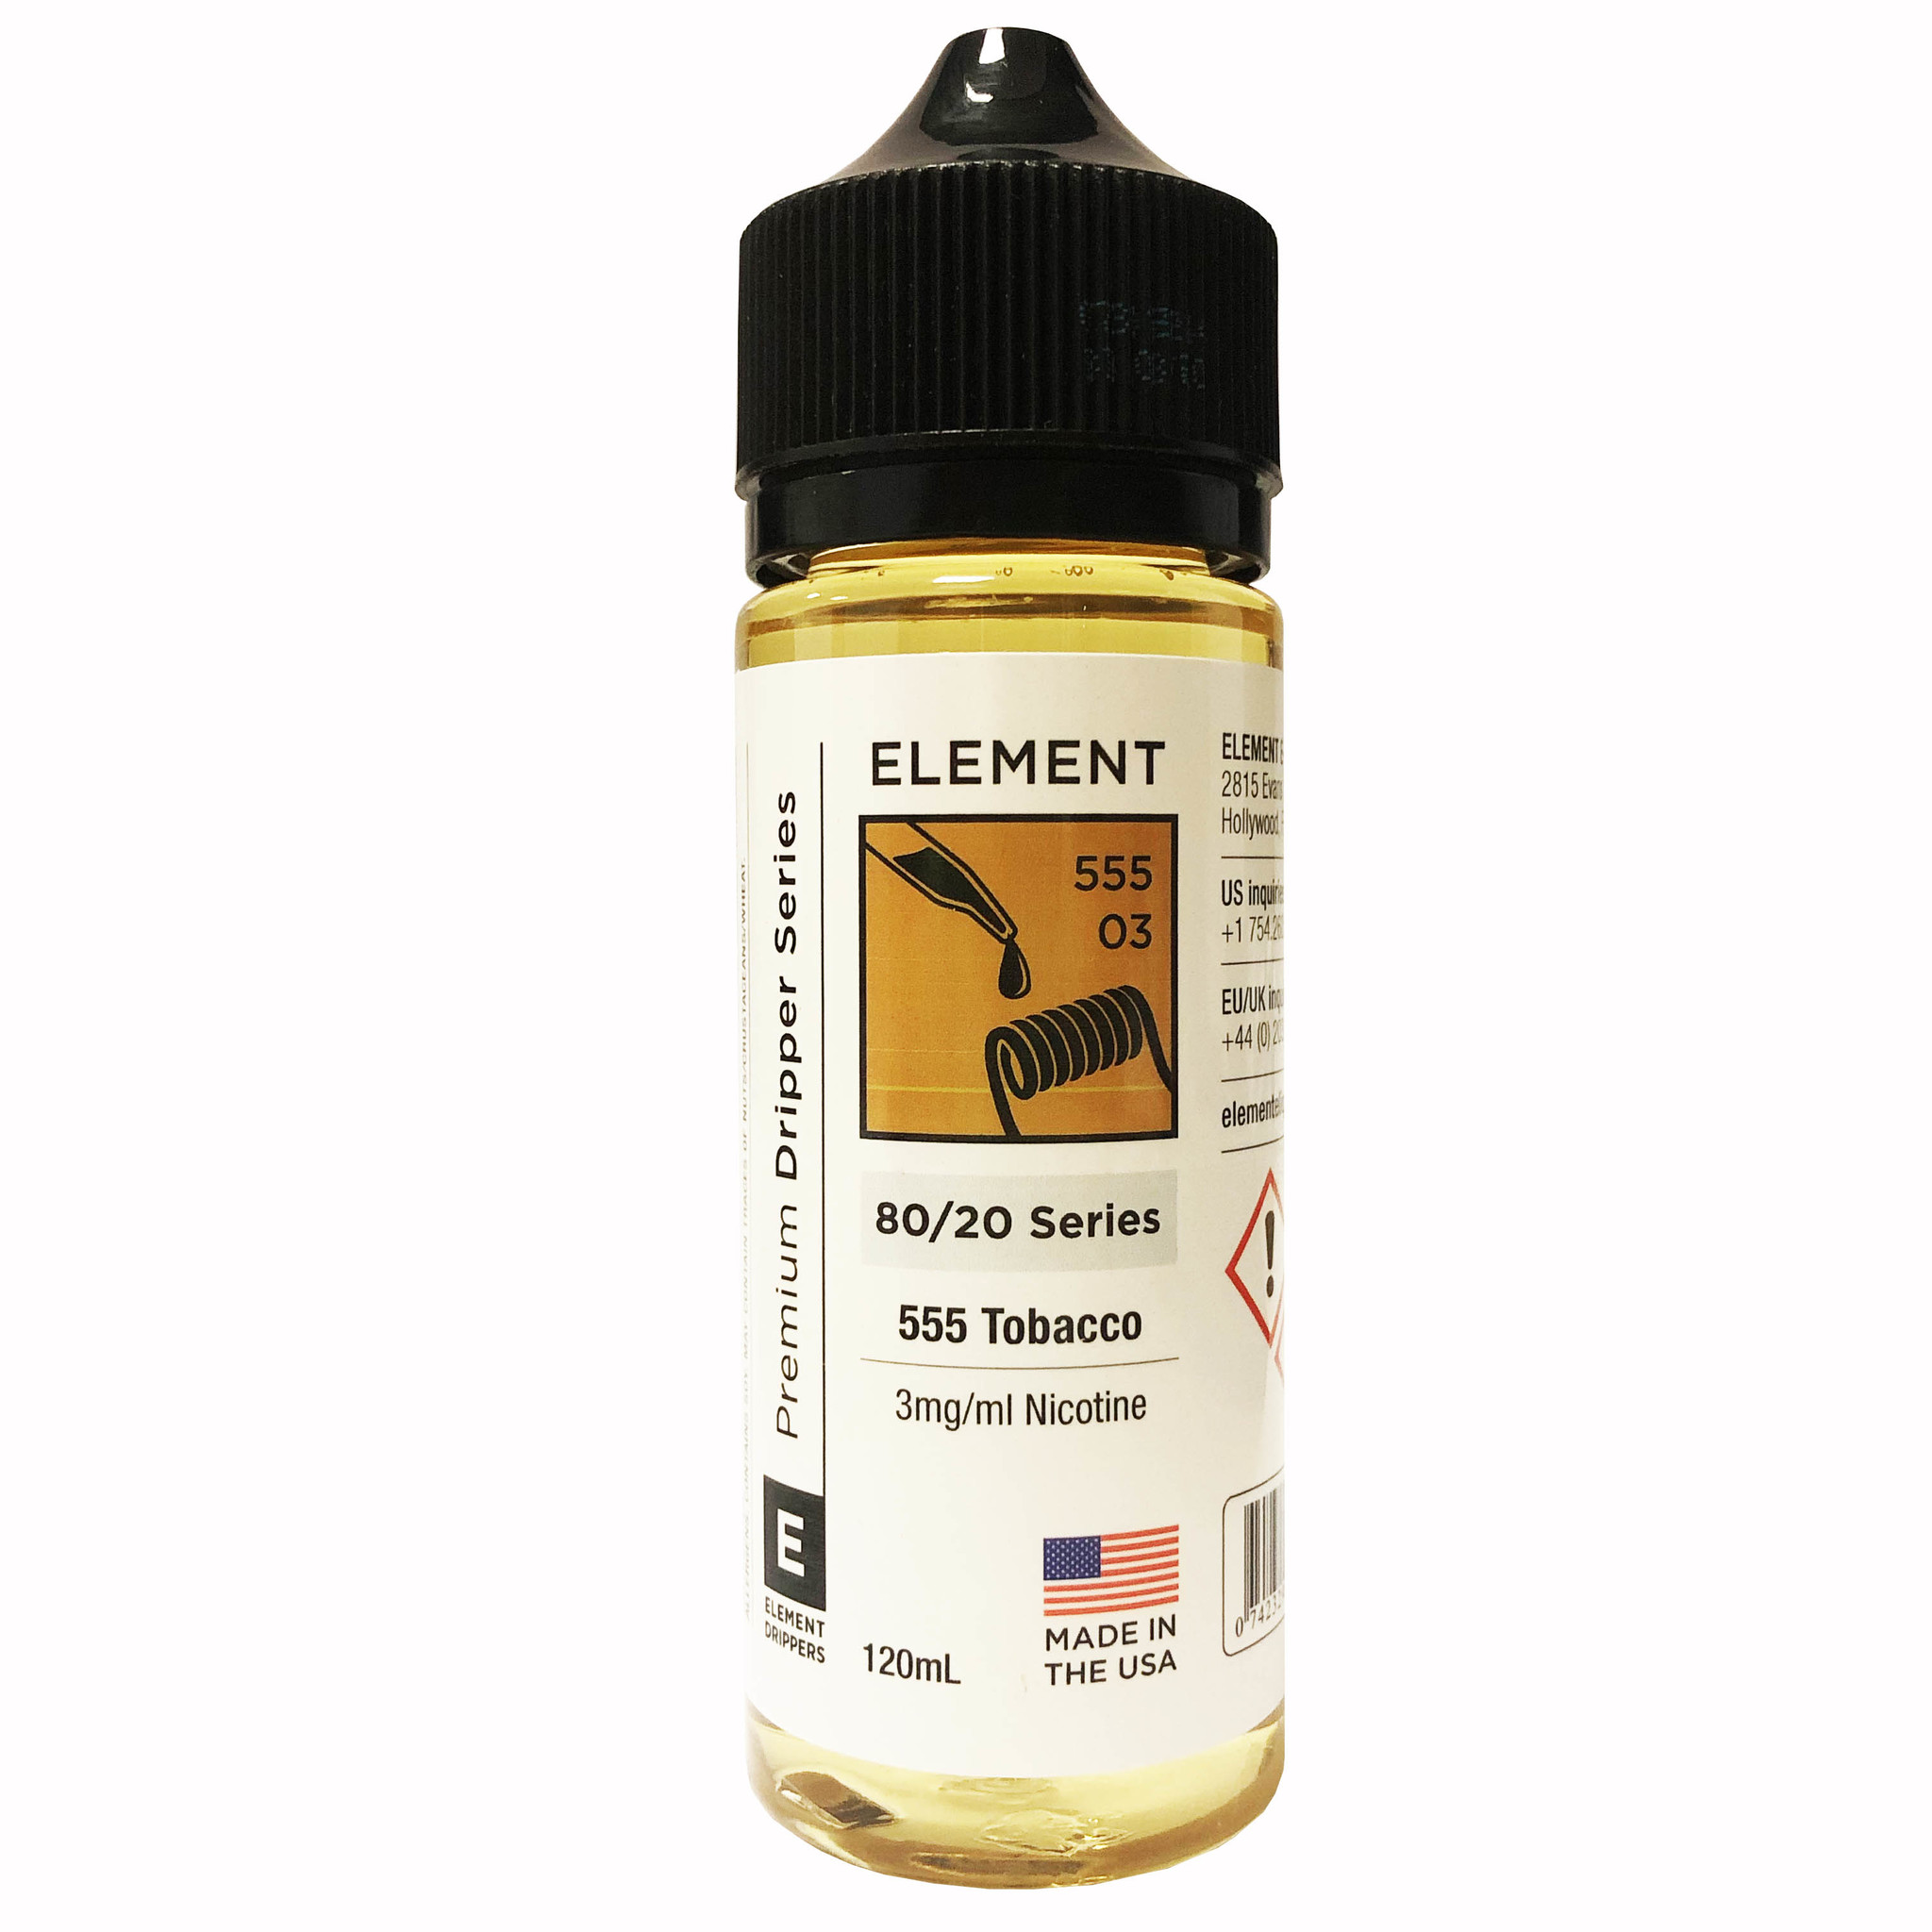 555 Tobacco by Element